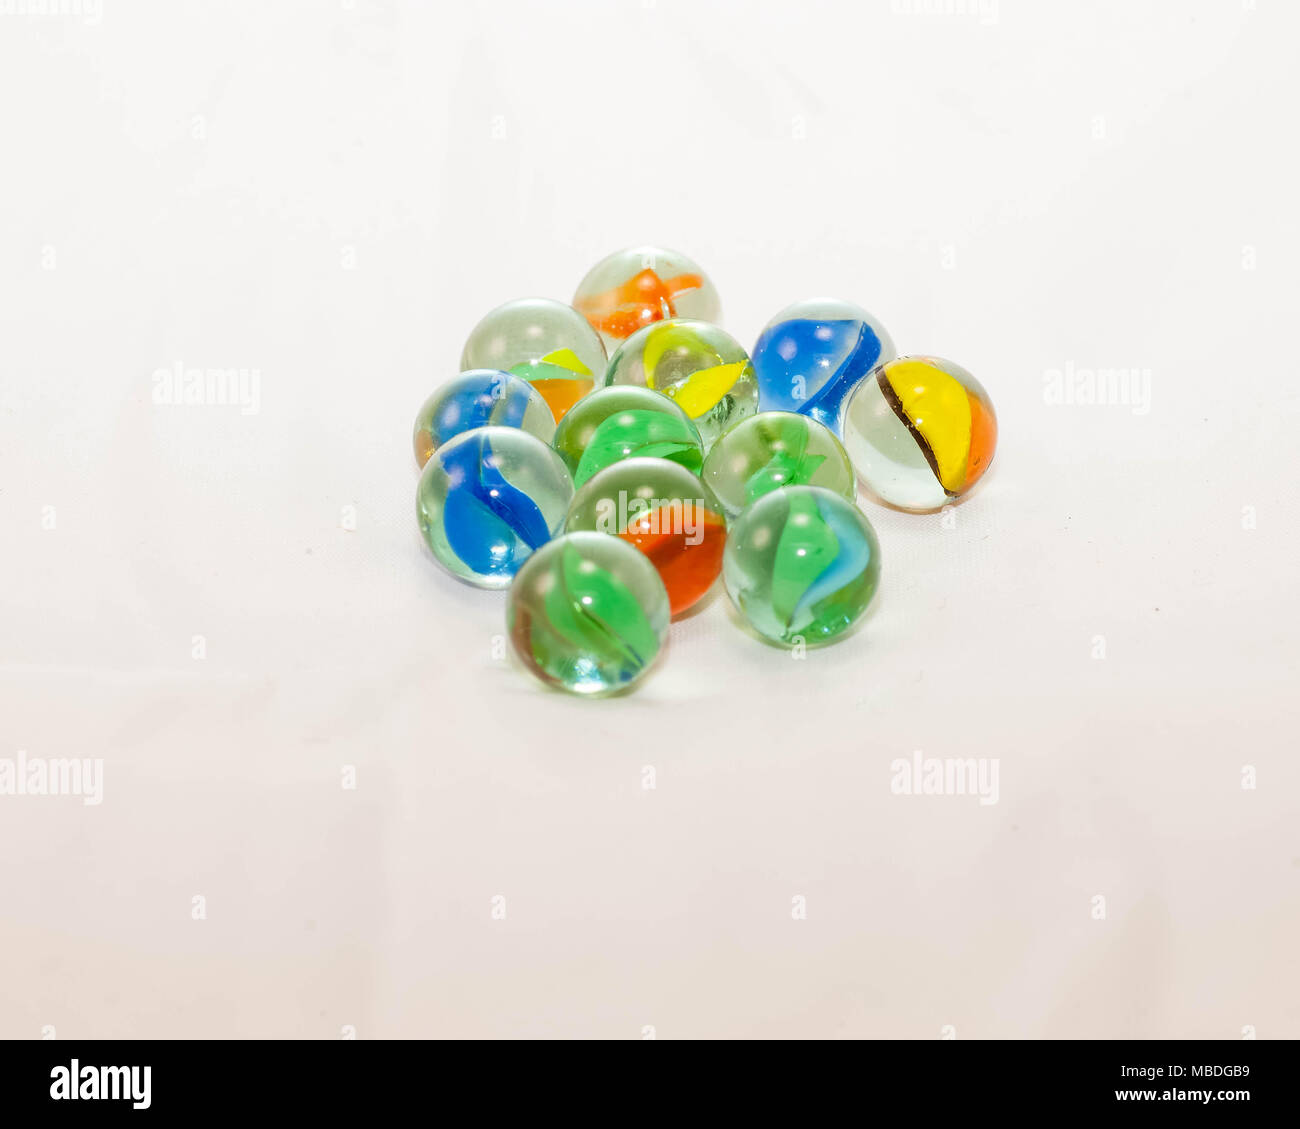 Misc various colors of cats-eye marbles from the collection - Stock Image